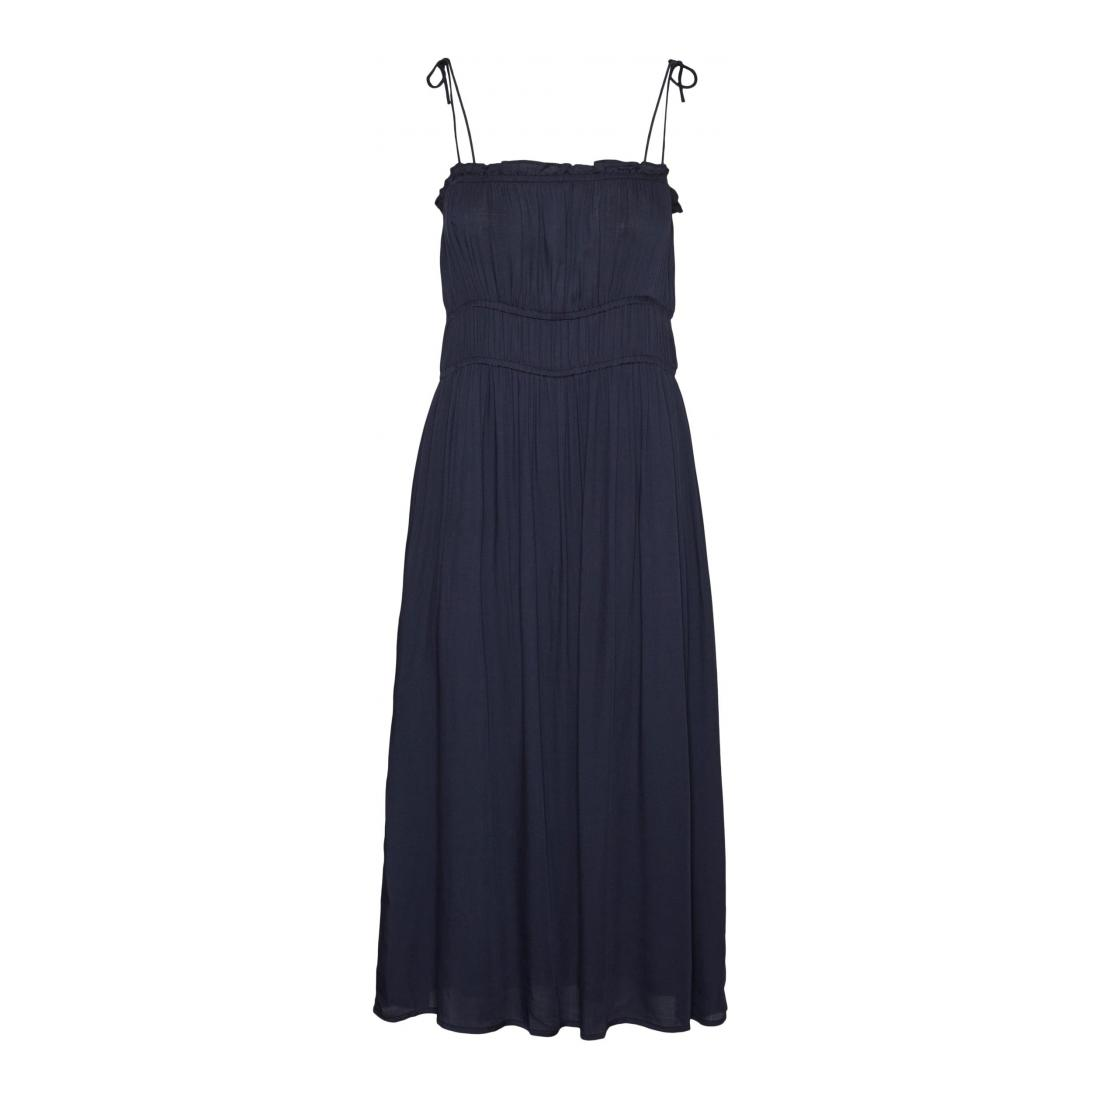 Vero Moda Kleider lang Damen VMHELYN STRAP CALF DRESS